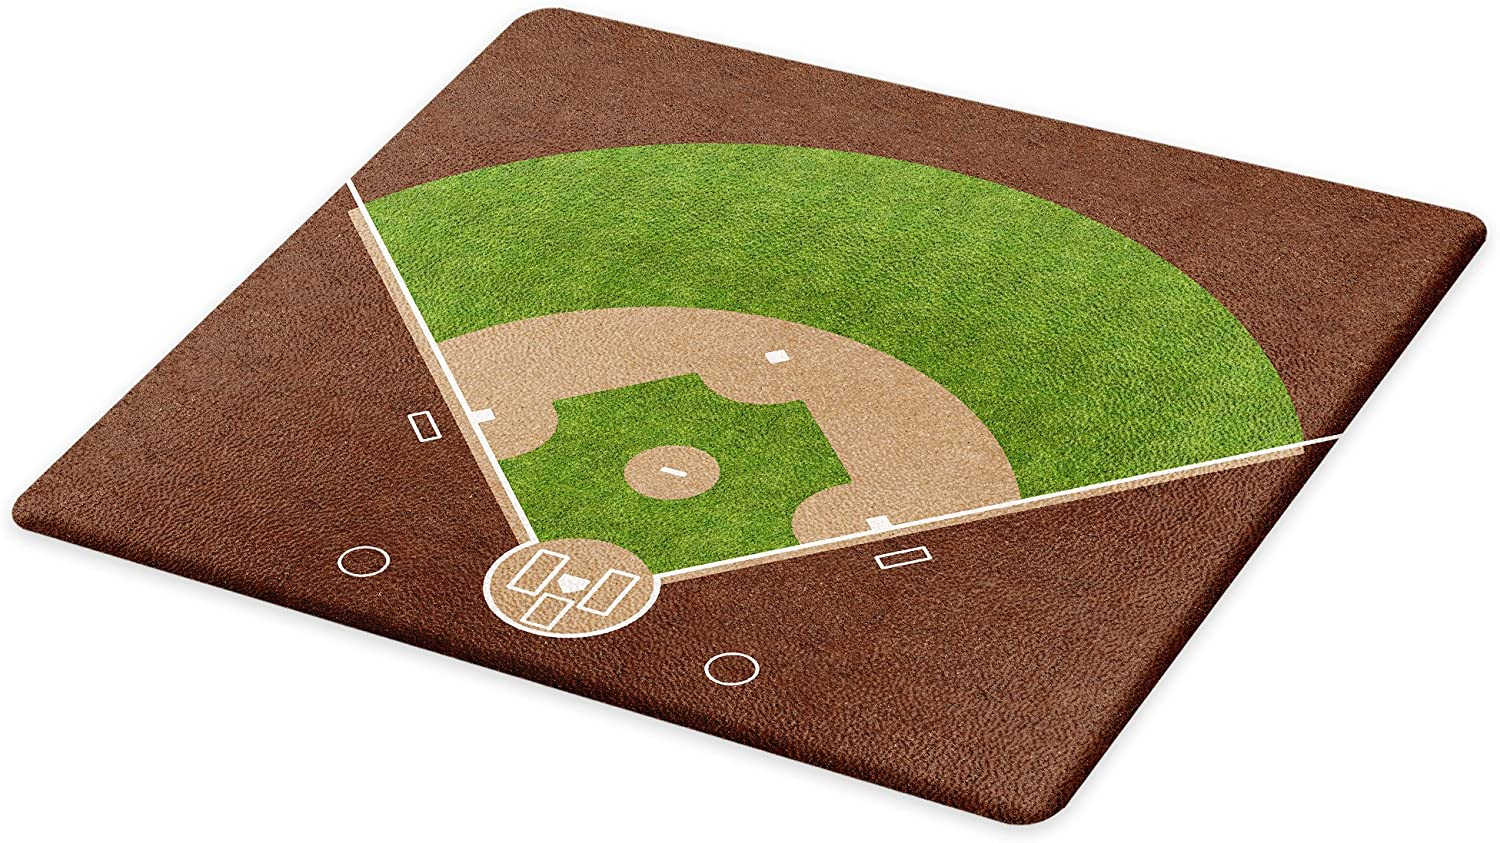 Lunarable Sports Cutting Board, American Baseball Field with White Markings Painted on Grass Print, Decorative Tempered Glass Cutting and Serving Board, Large Size, Lime Green Chocolate Tan